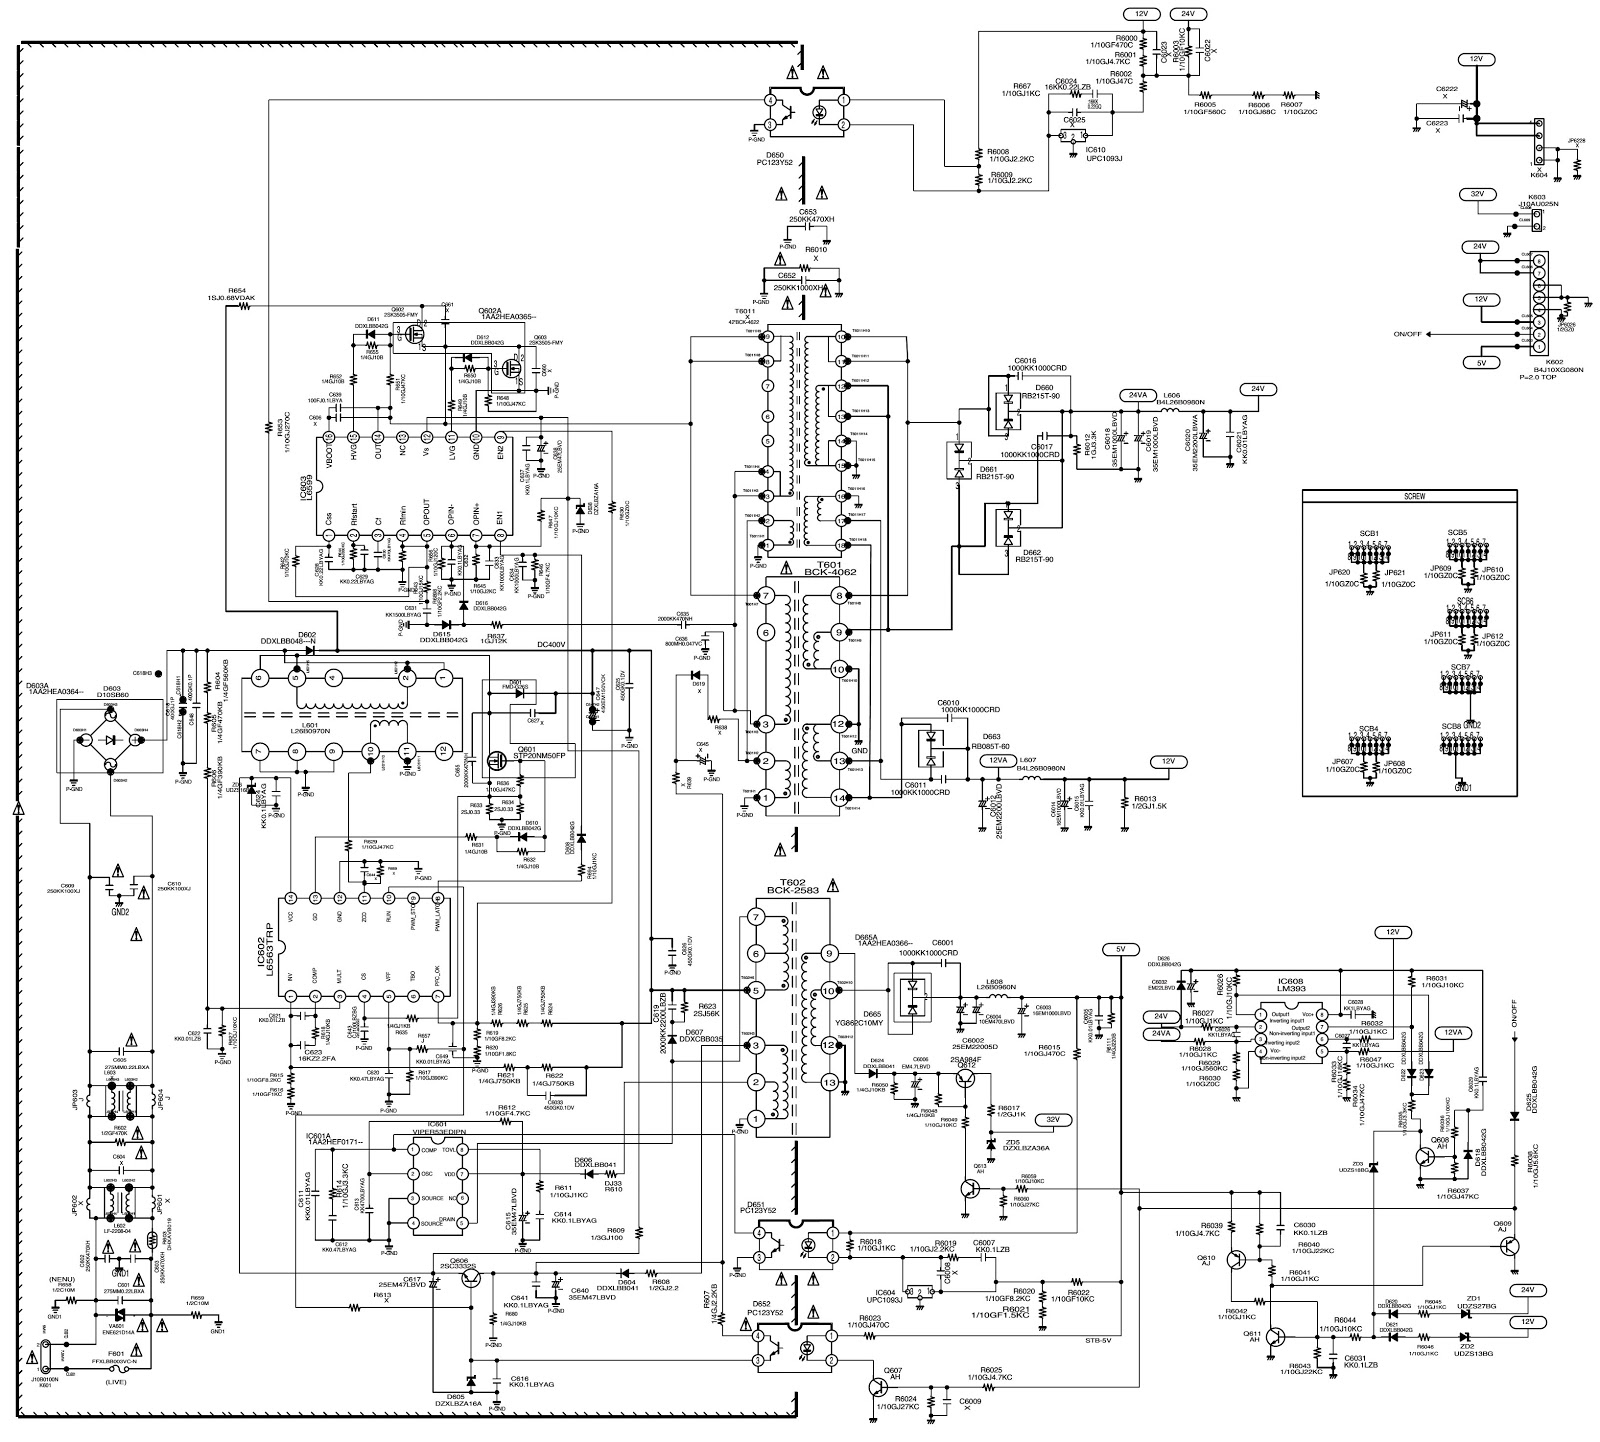 sanyo tv service modes and smps back light inverter schematics tv sanyo c27lw33s diagrama lcd 24xh7 [ 1600 x 1442 Pixel ]